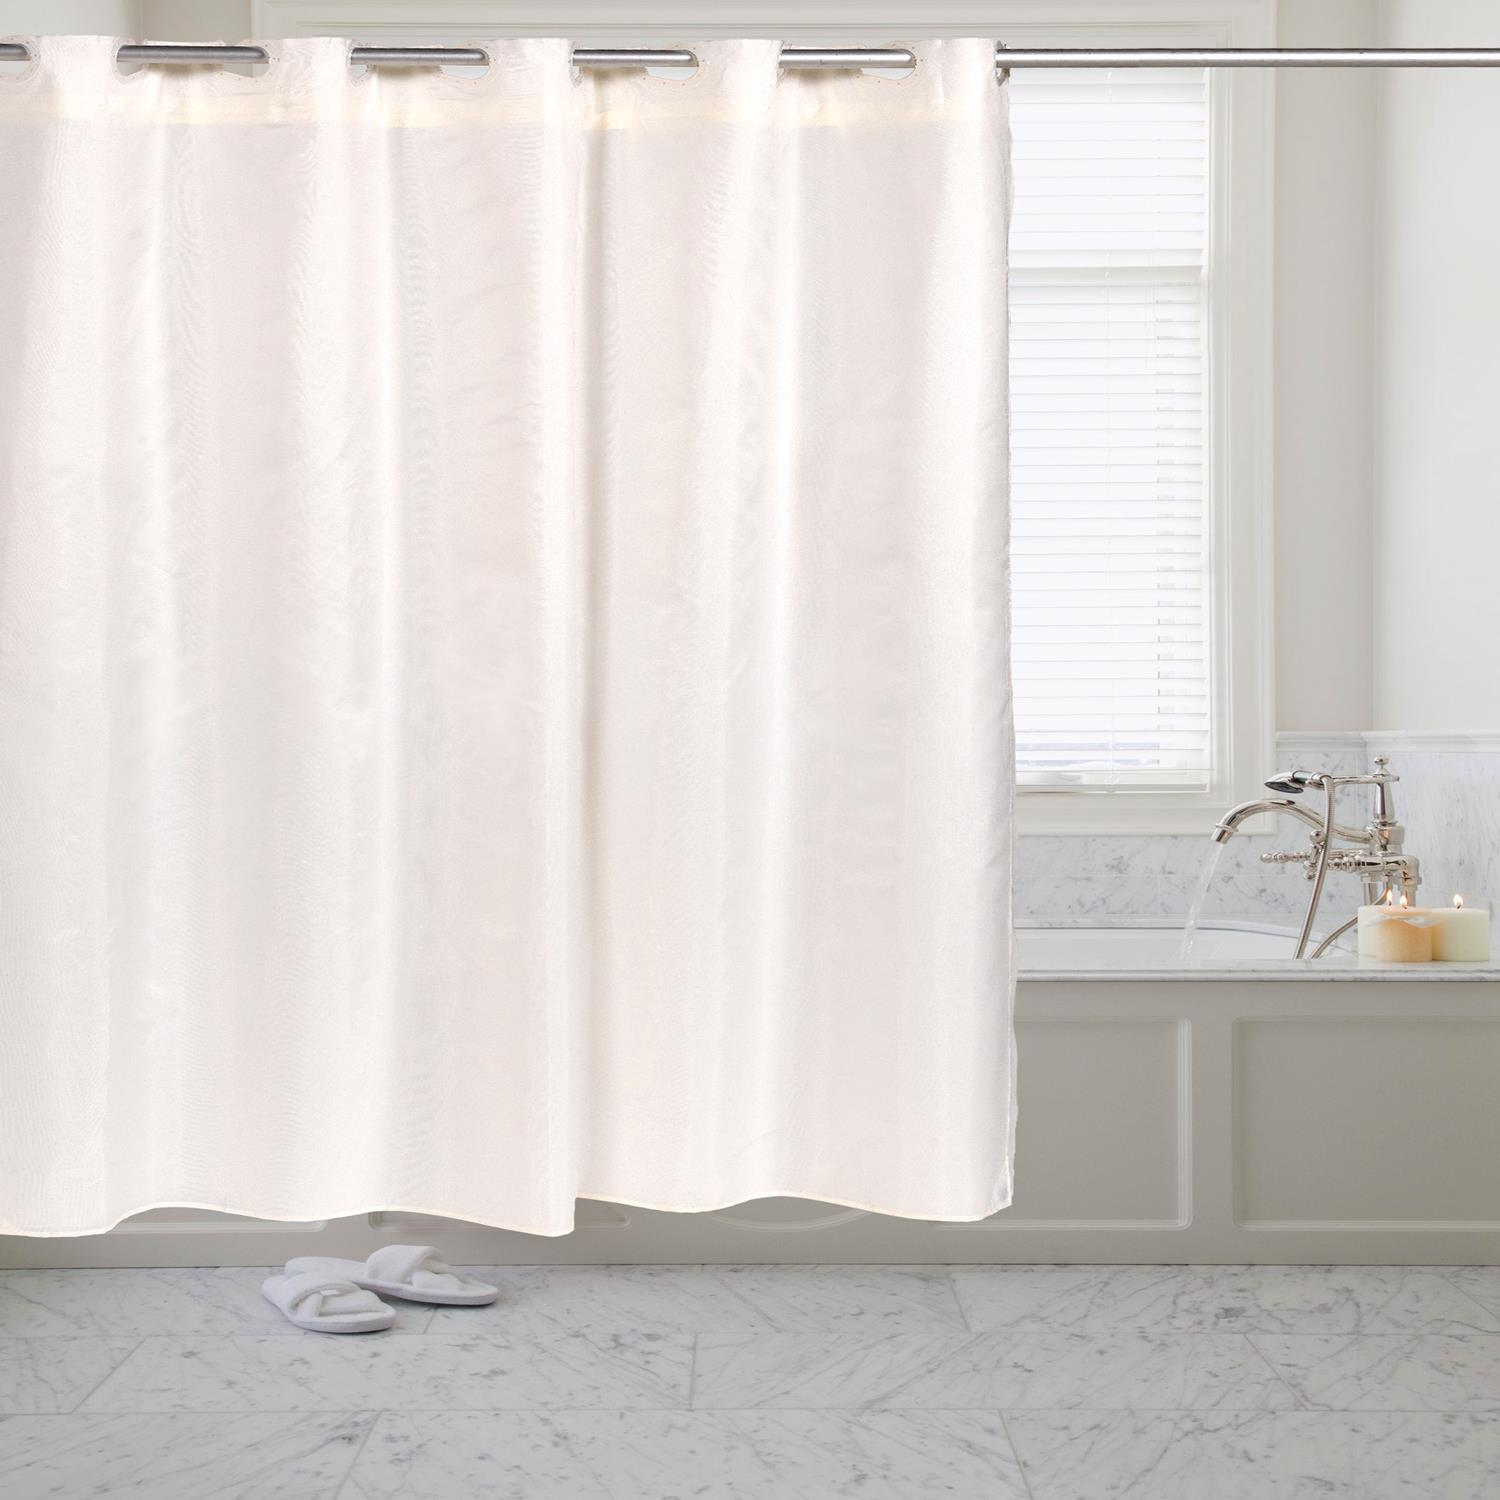 Details About Carnation Home Pre Hookedt Fabric Shower Curtain In 70x72 Ivory